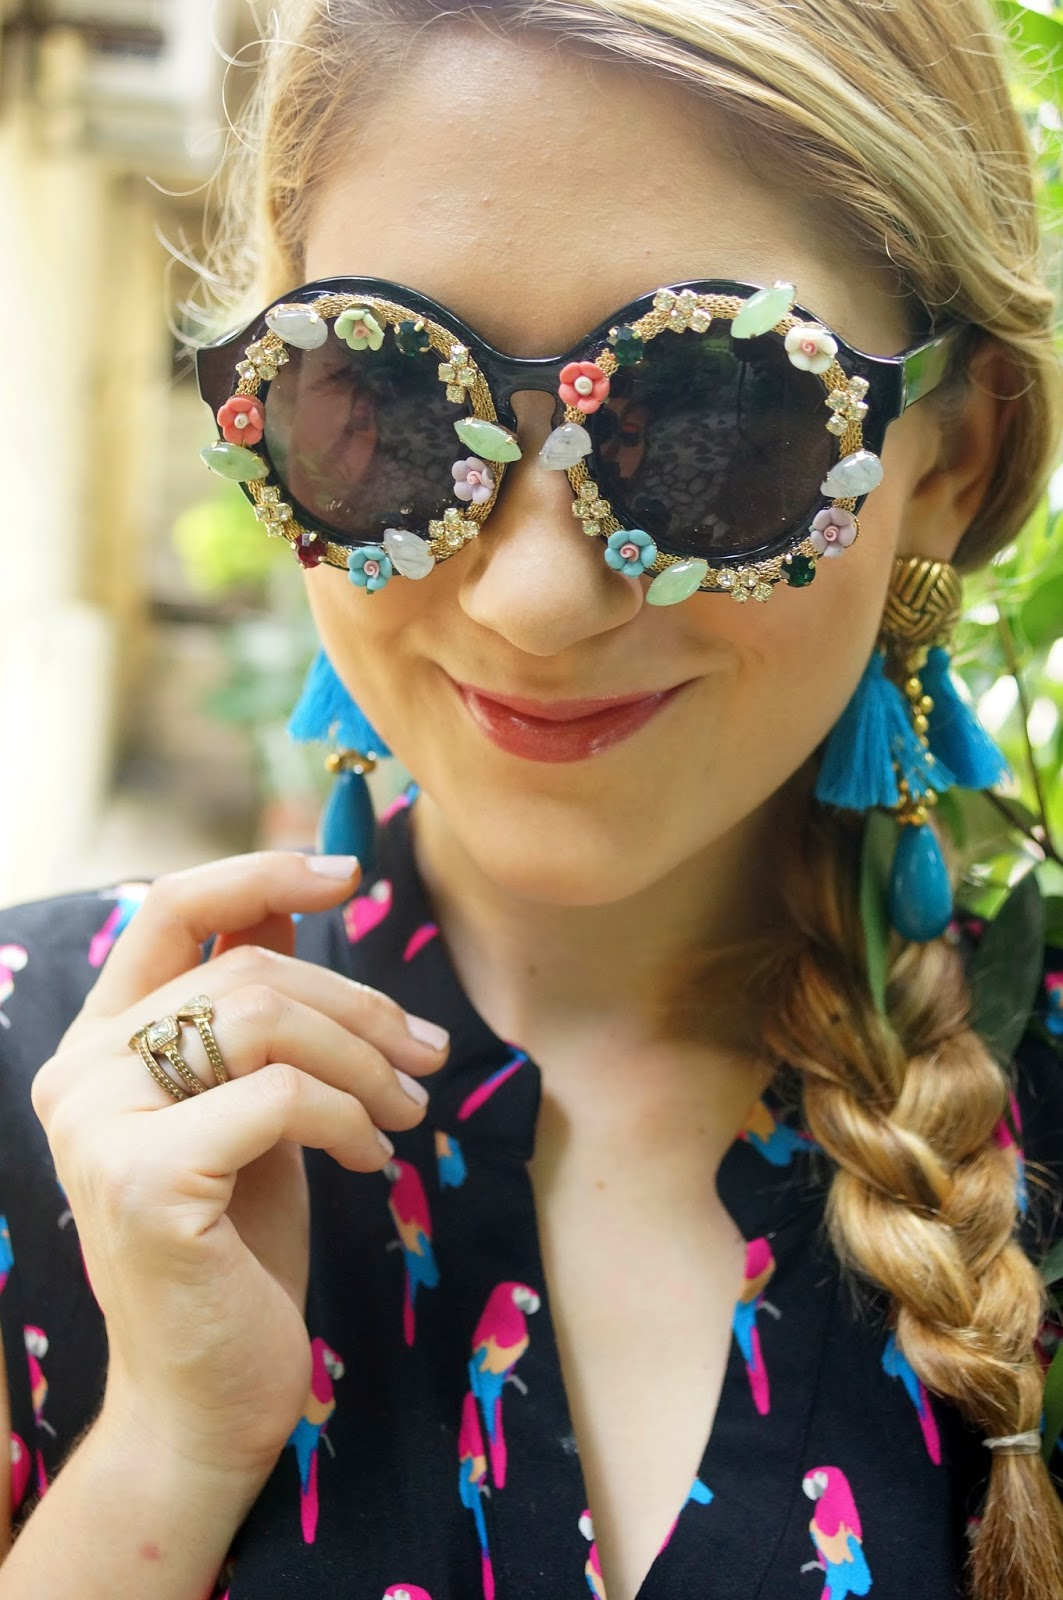 These flower sunglasses are SO cool!